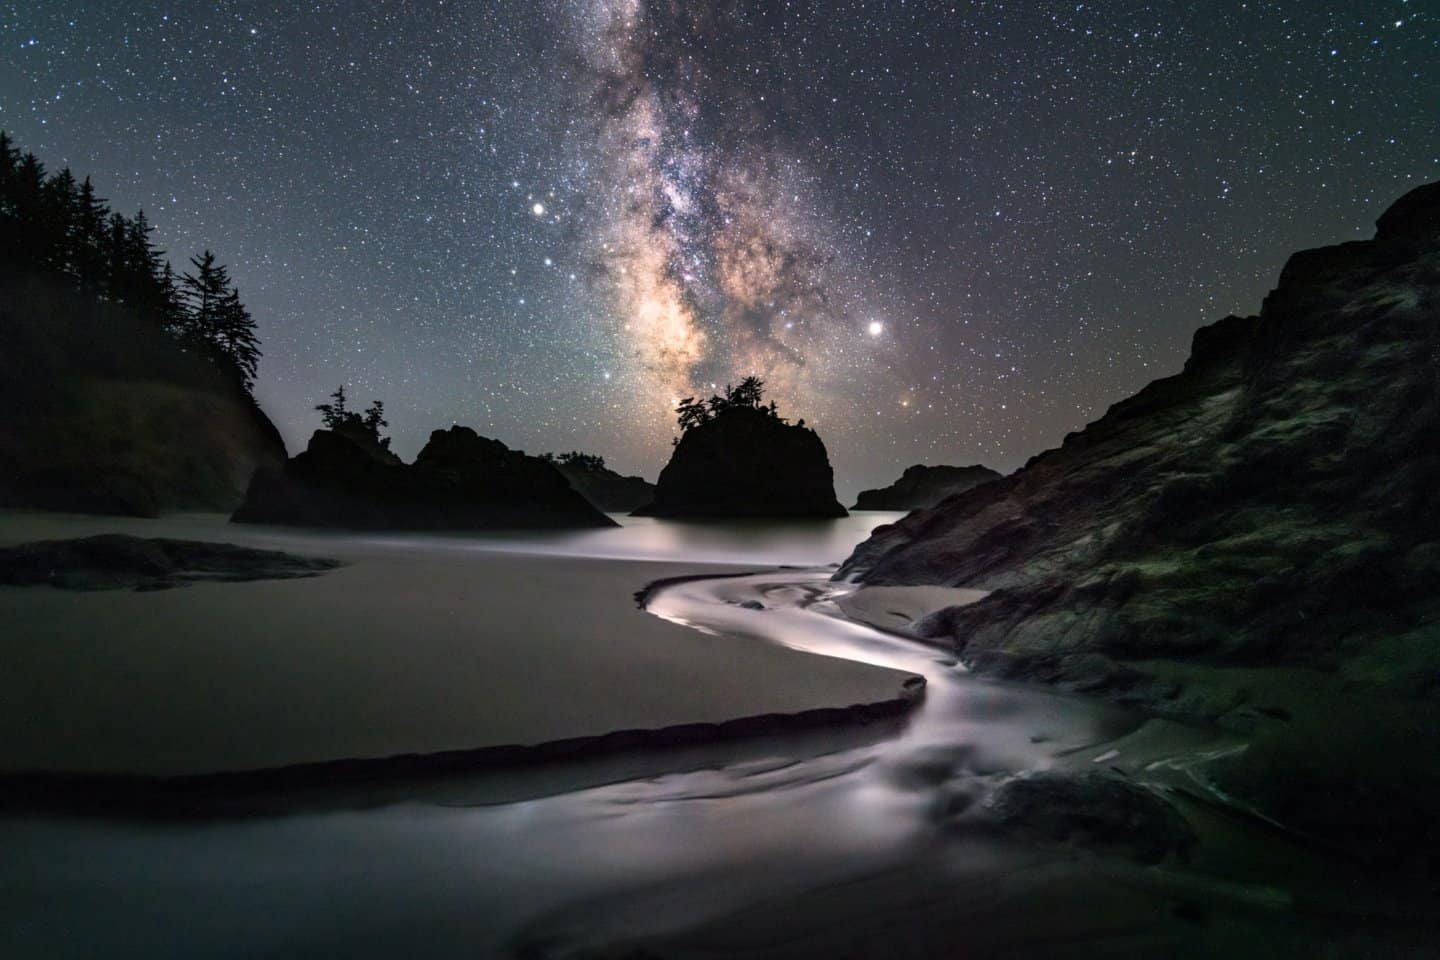 Read more about Secret Beach and other locations for night photography in this guide to Southern Oregon Coast Photography locations.